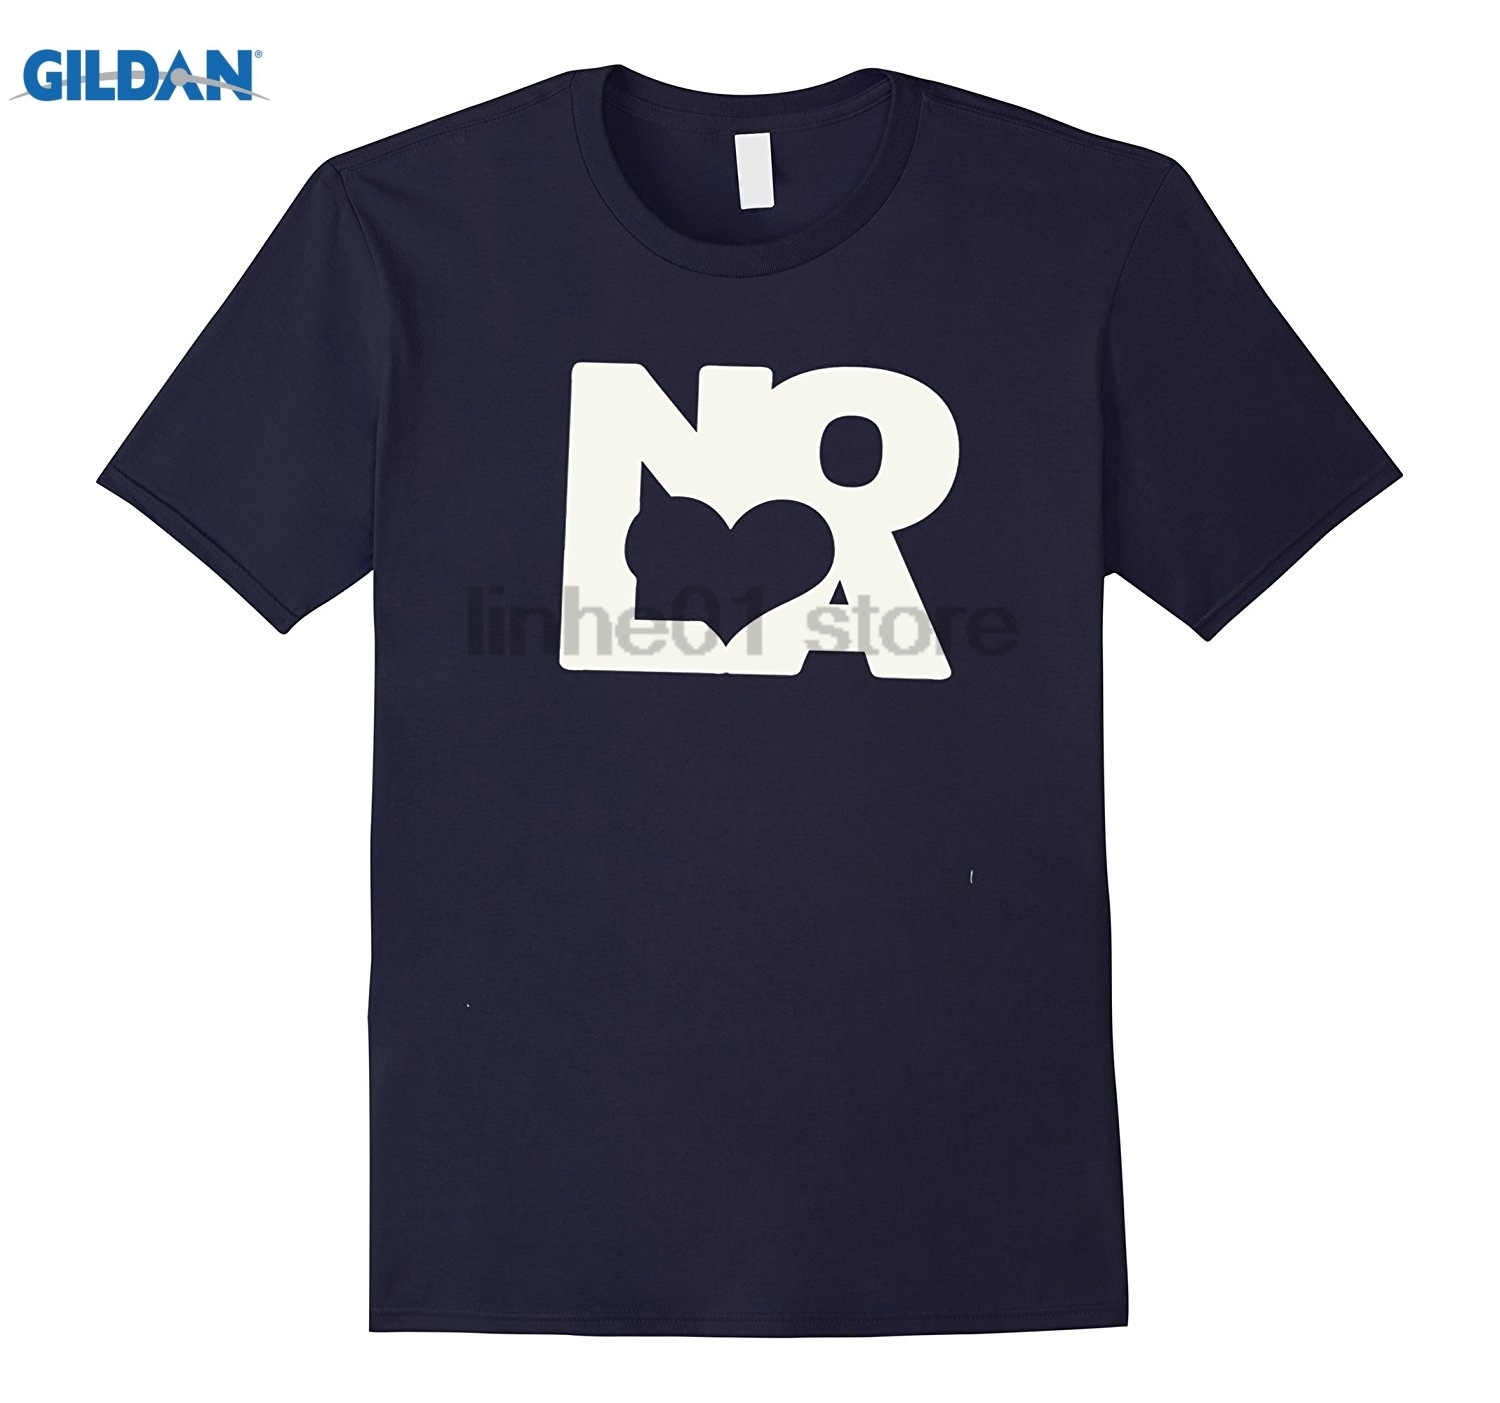 GILDAN NOLA New Orleans Louisiana Tee Shirt Hot Womens T-shirt ...